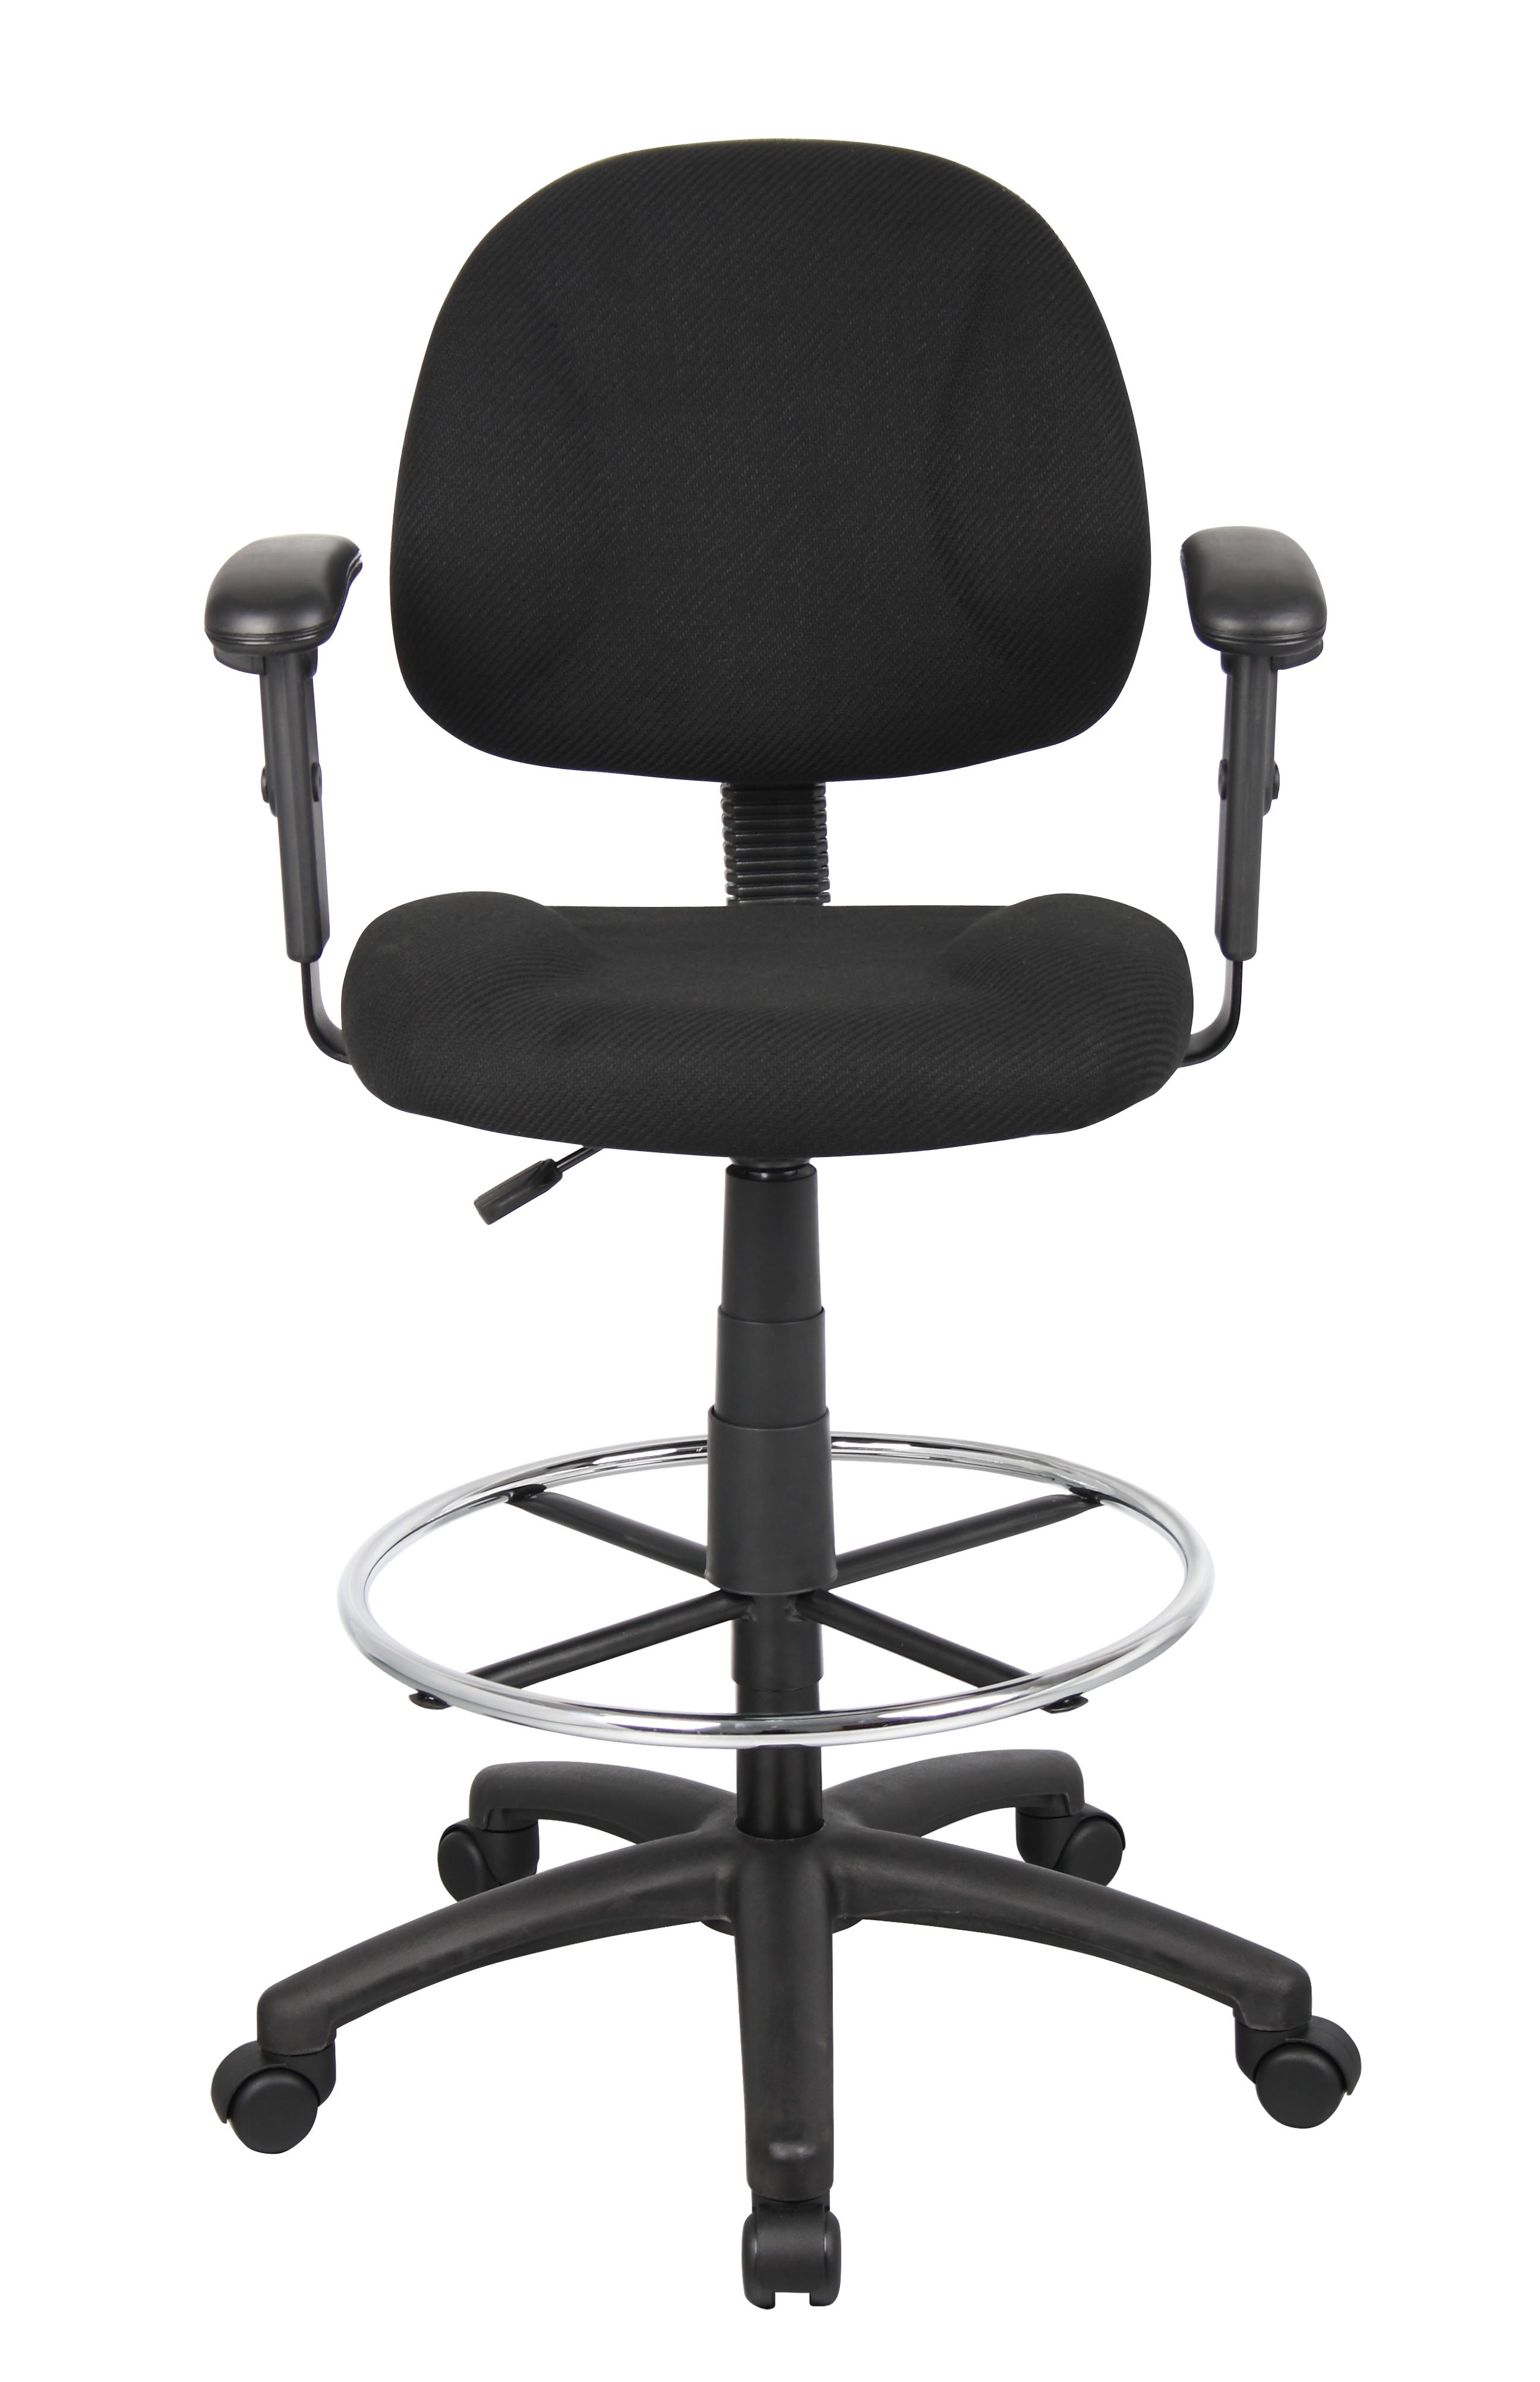 Sensational Boss Ergonomic Works Adustable Drafting Chair With Adjustable Arms And Removable Foot Rest Black Creativecarmelina Interior Chair Design Creativecarmelinacom